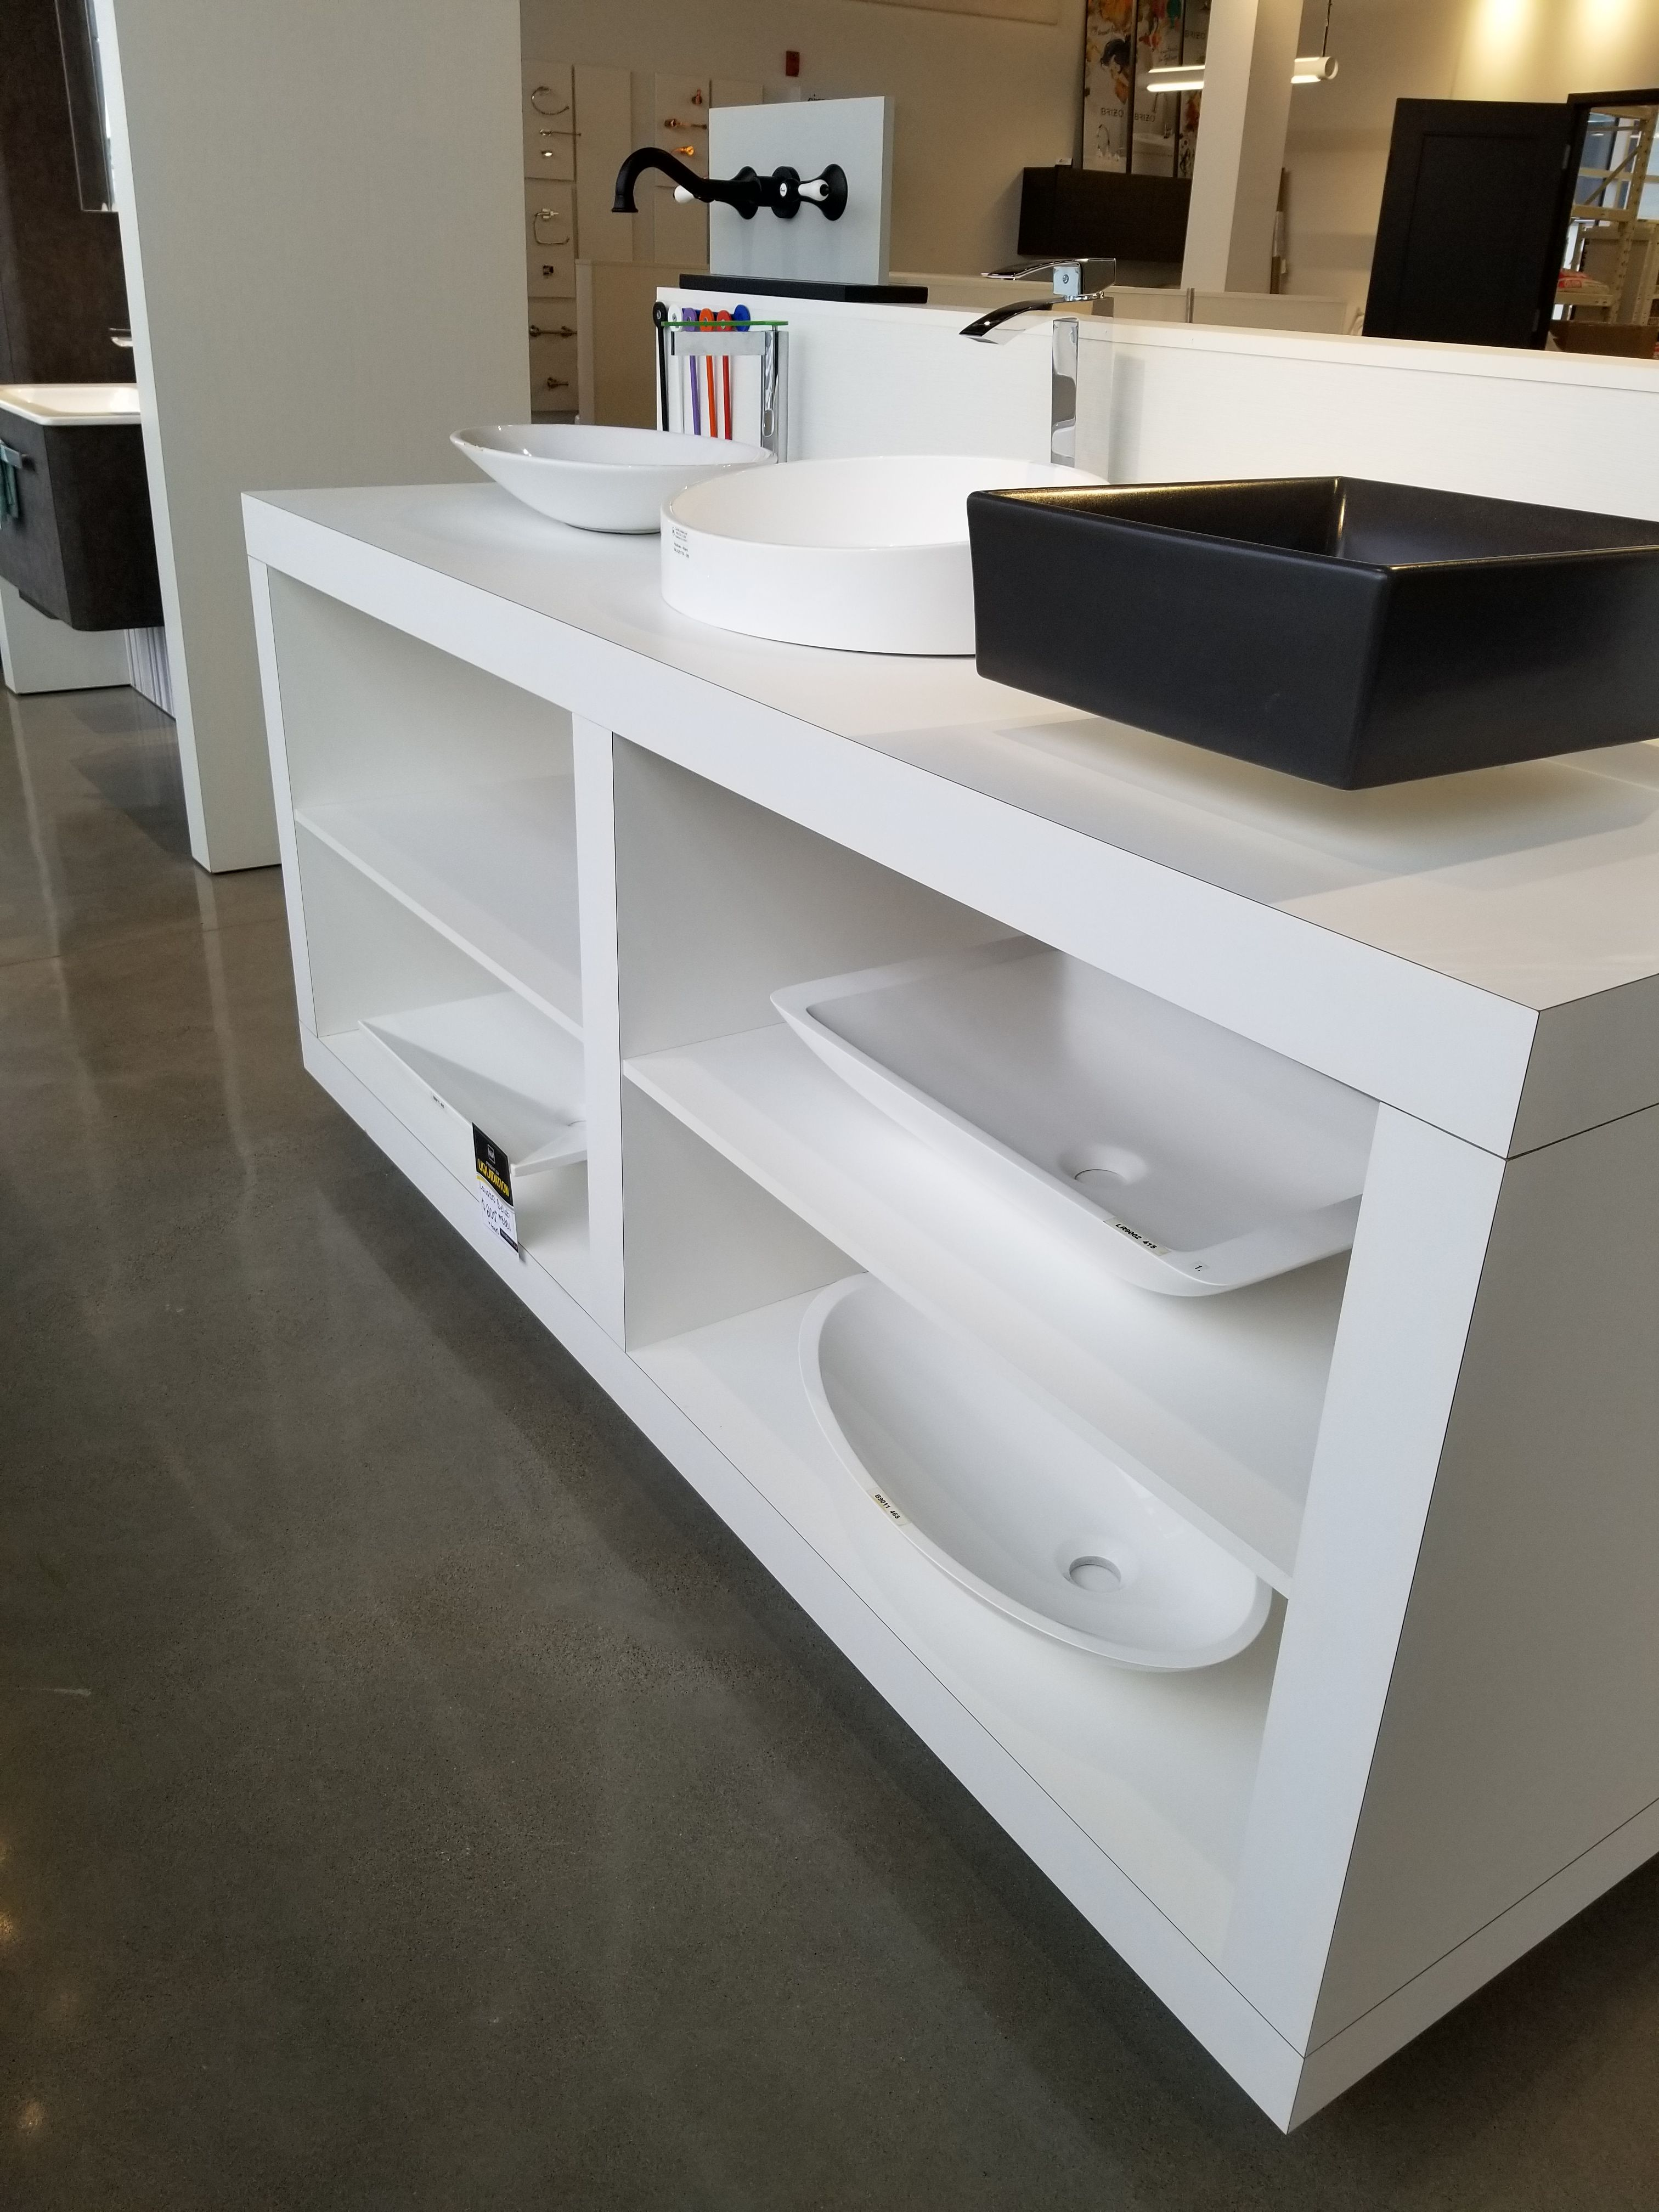 Magnificent Vessel Sink Display Custom Displays For Kitchen And Bath Home Remodeling Inspirations Genioncuboardxyz